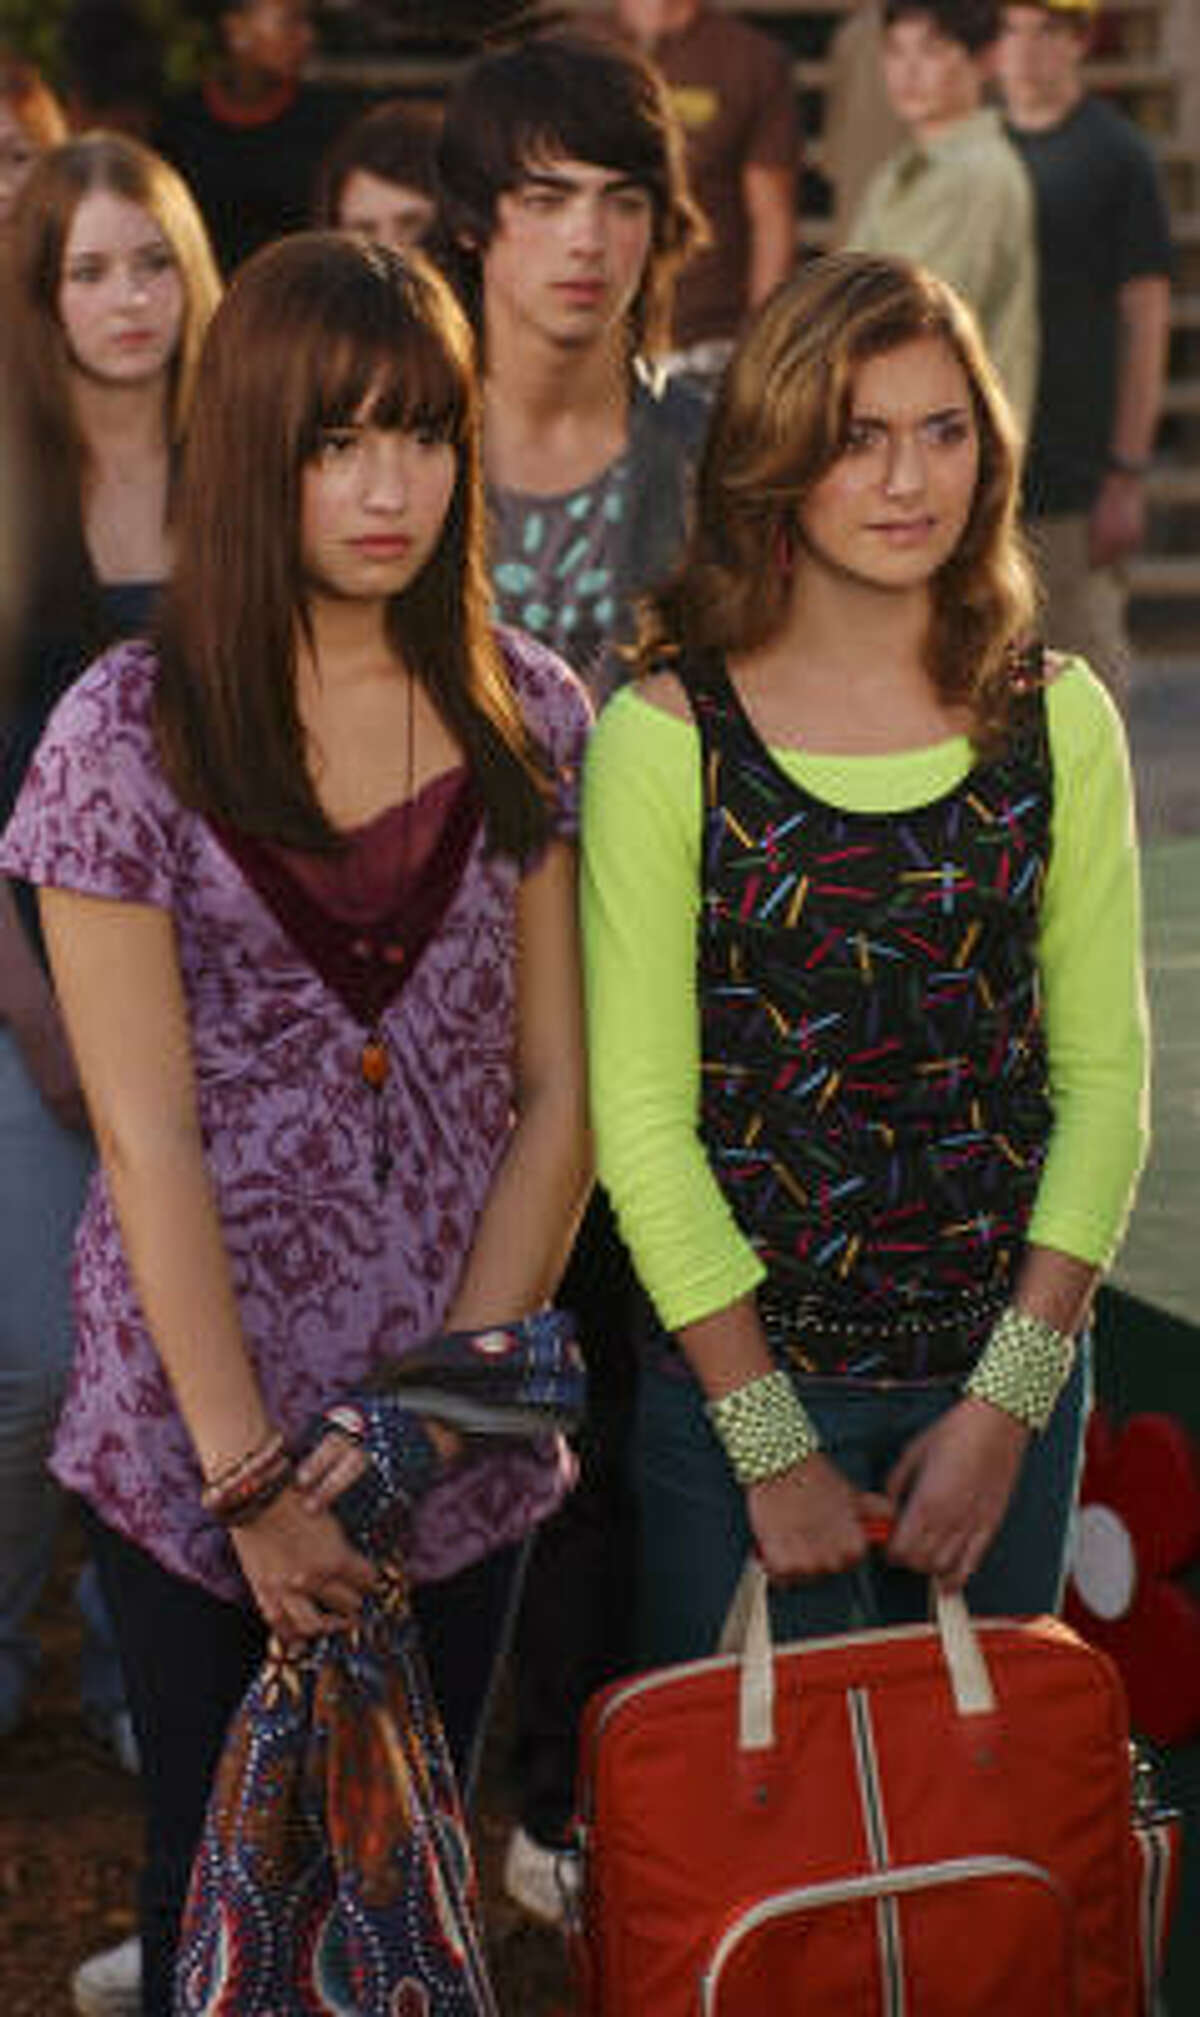 Camp Rock On Monday, May 30 at 6:15 p.m., you can check Demi Lovato in her first star turn in this movie, in which she plays a small-town nobody at a Jonas-infused summer camp. Ah, memories.